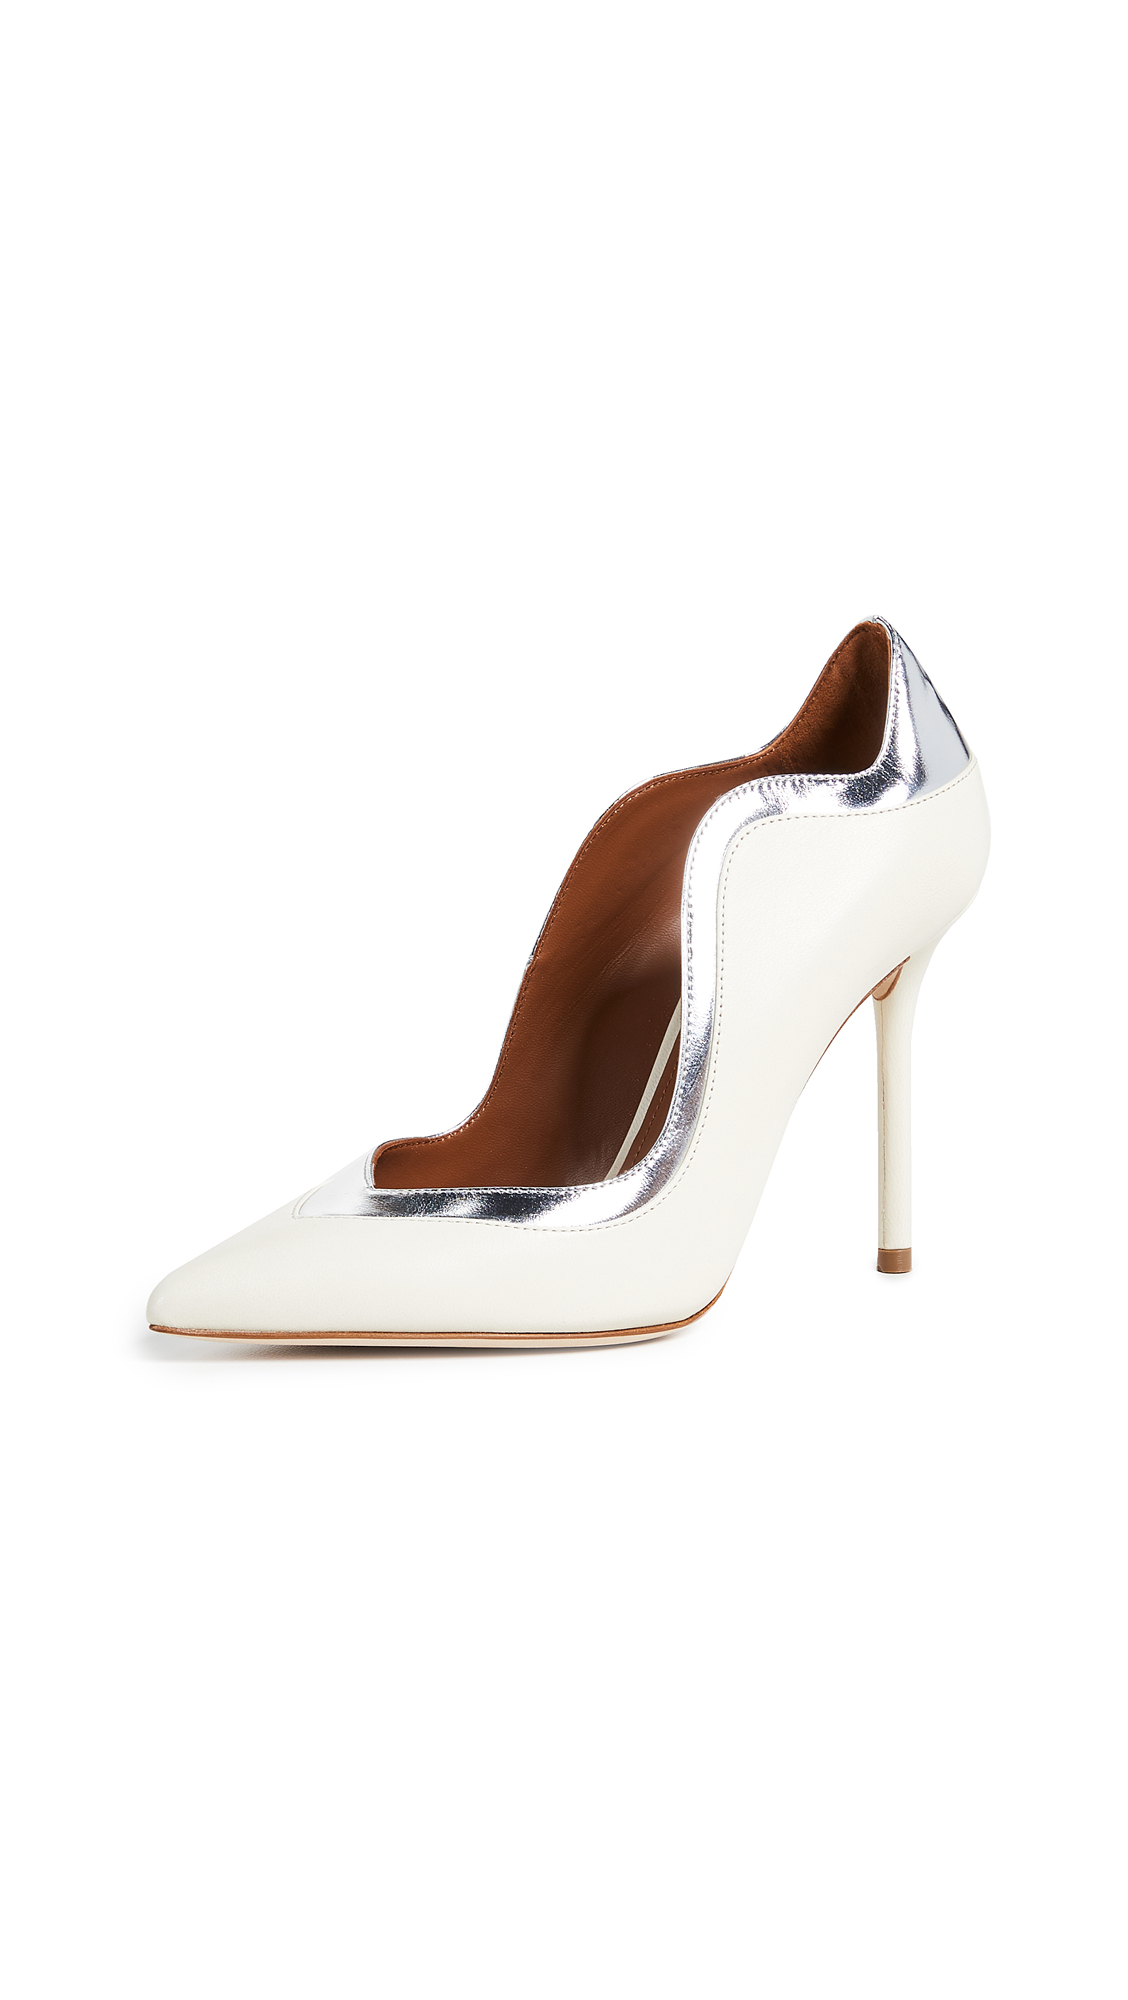 Malone Souliers Penelope Pumps - Ivory/Silver